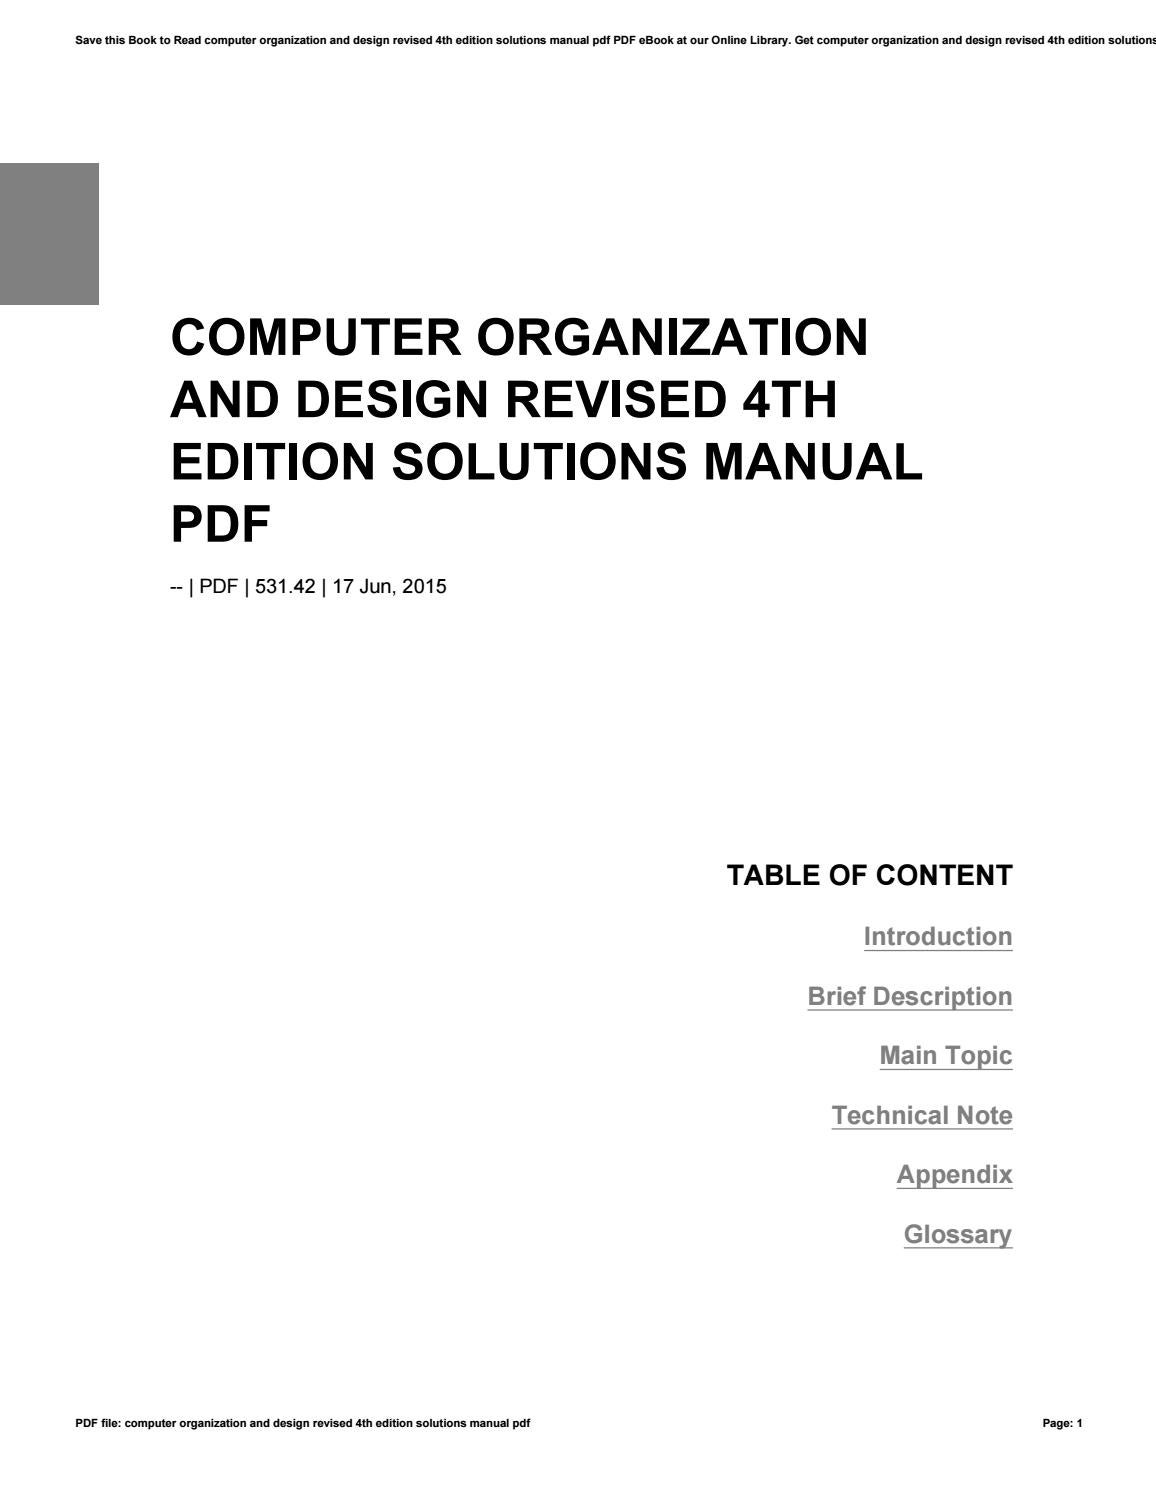 Computer organization and design revised 4th edition solutions manual pdf  by aju8 - issuu